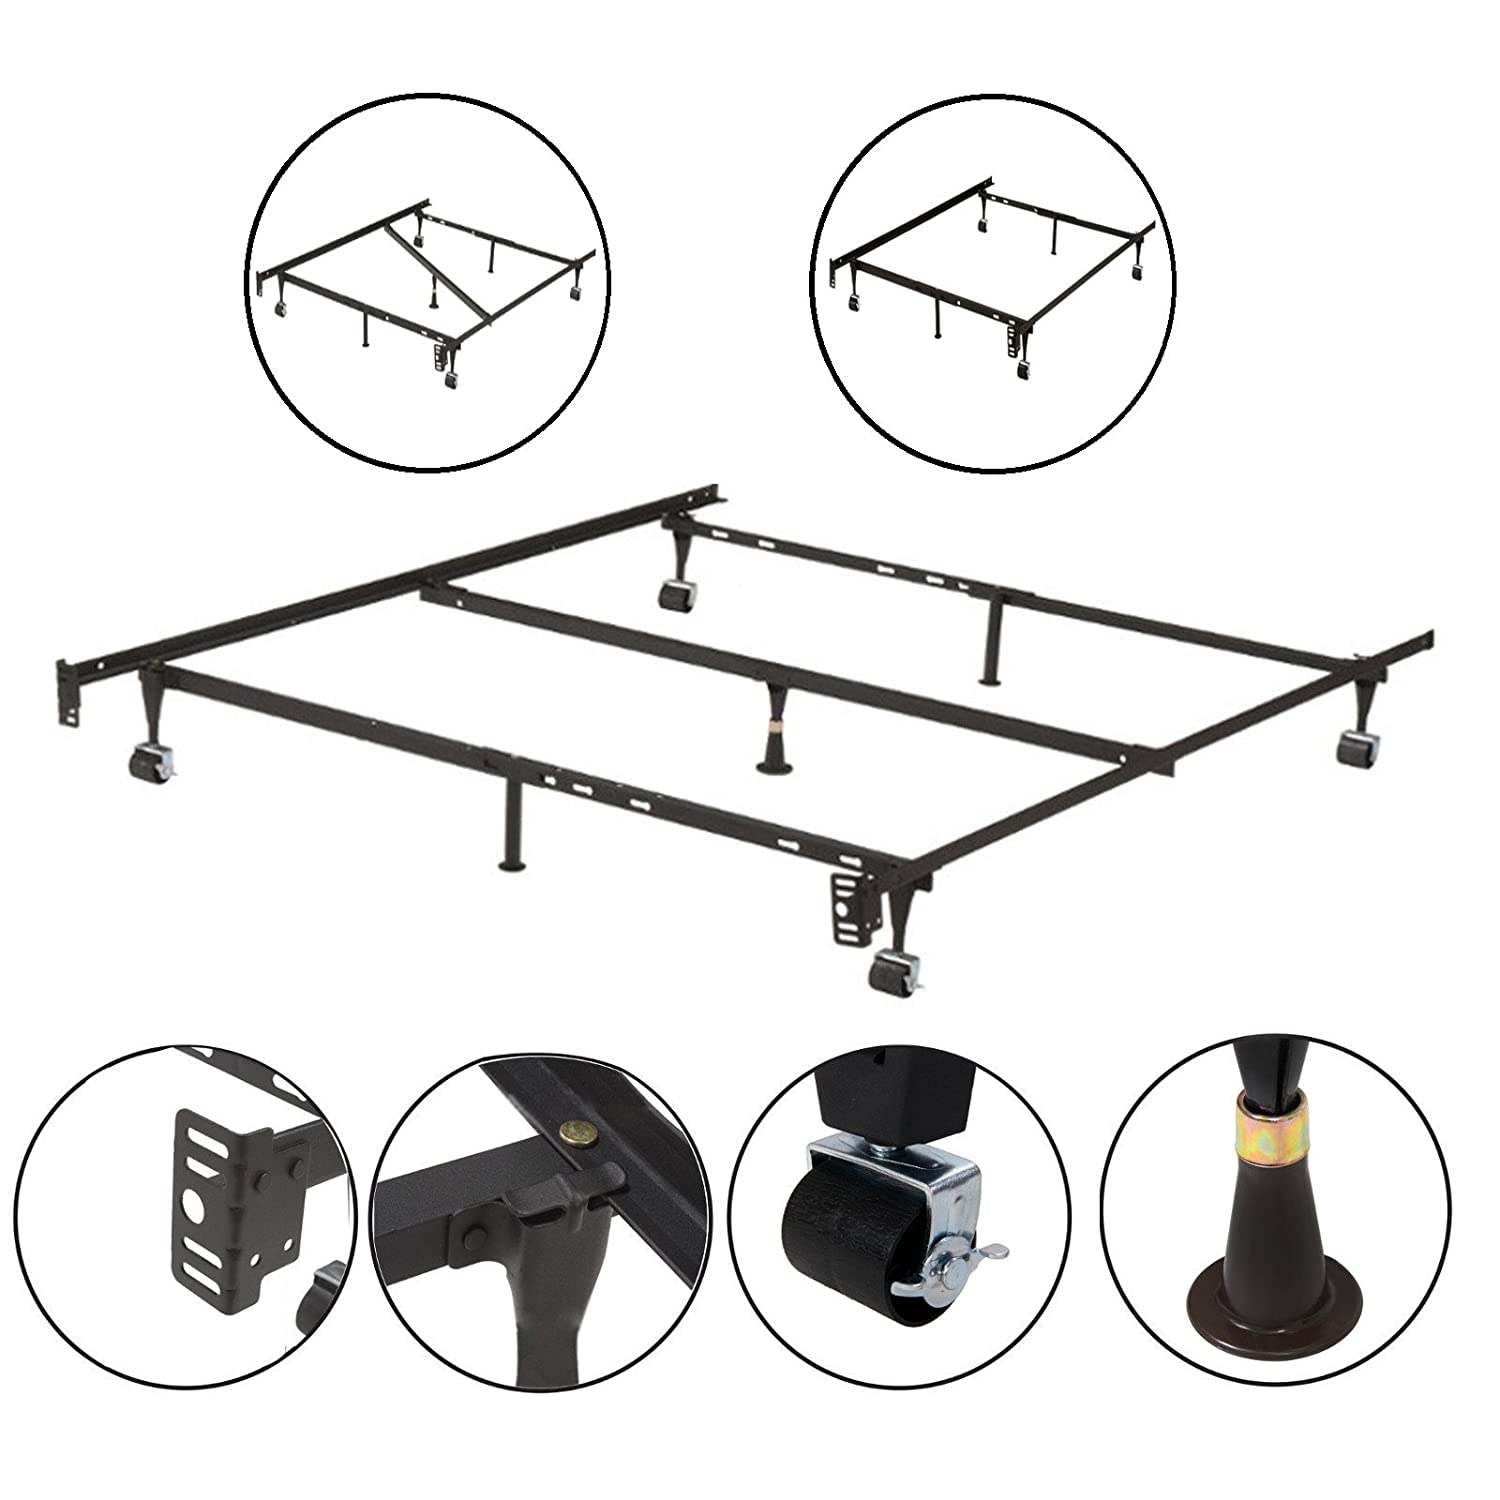 kings brand furniture 7 leg adjustable metal bed frame with center support rug rollers and locking wheels for queenfullfull